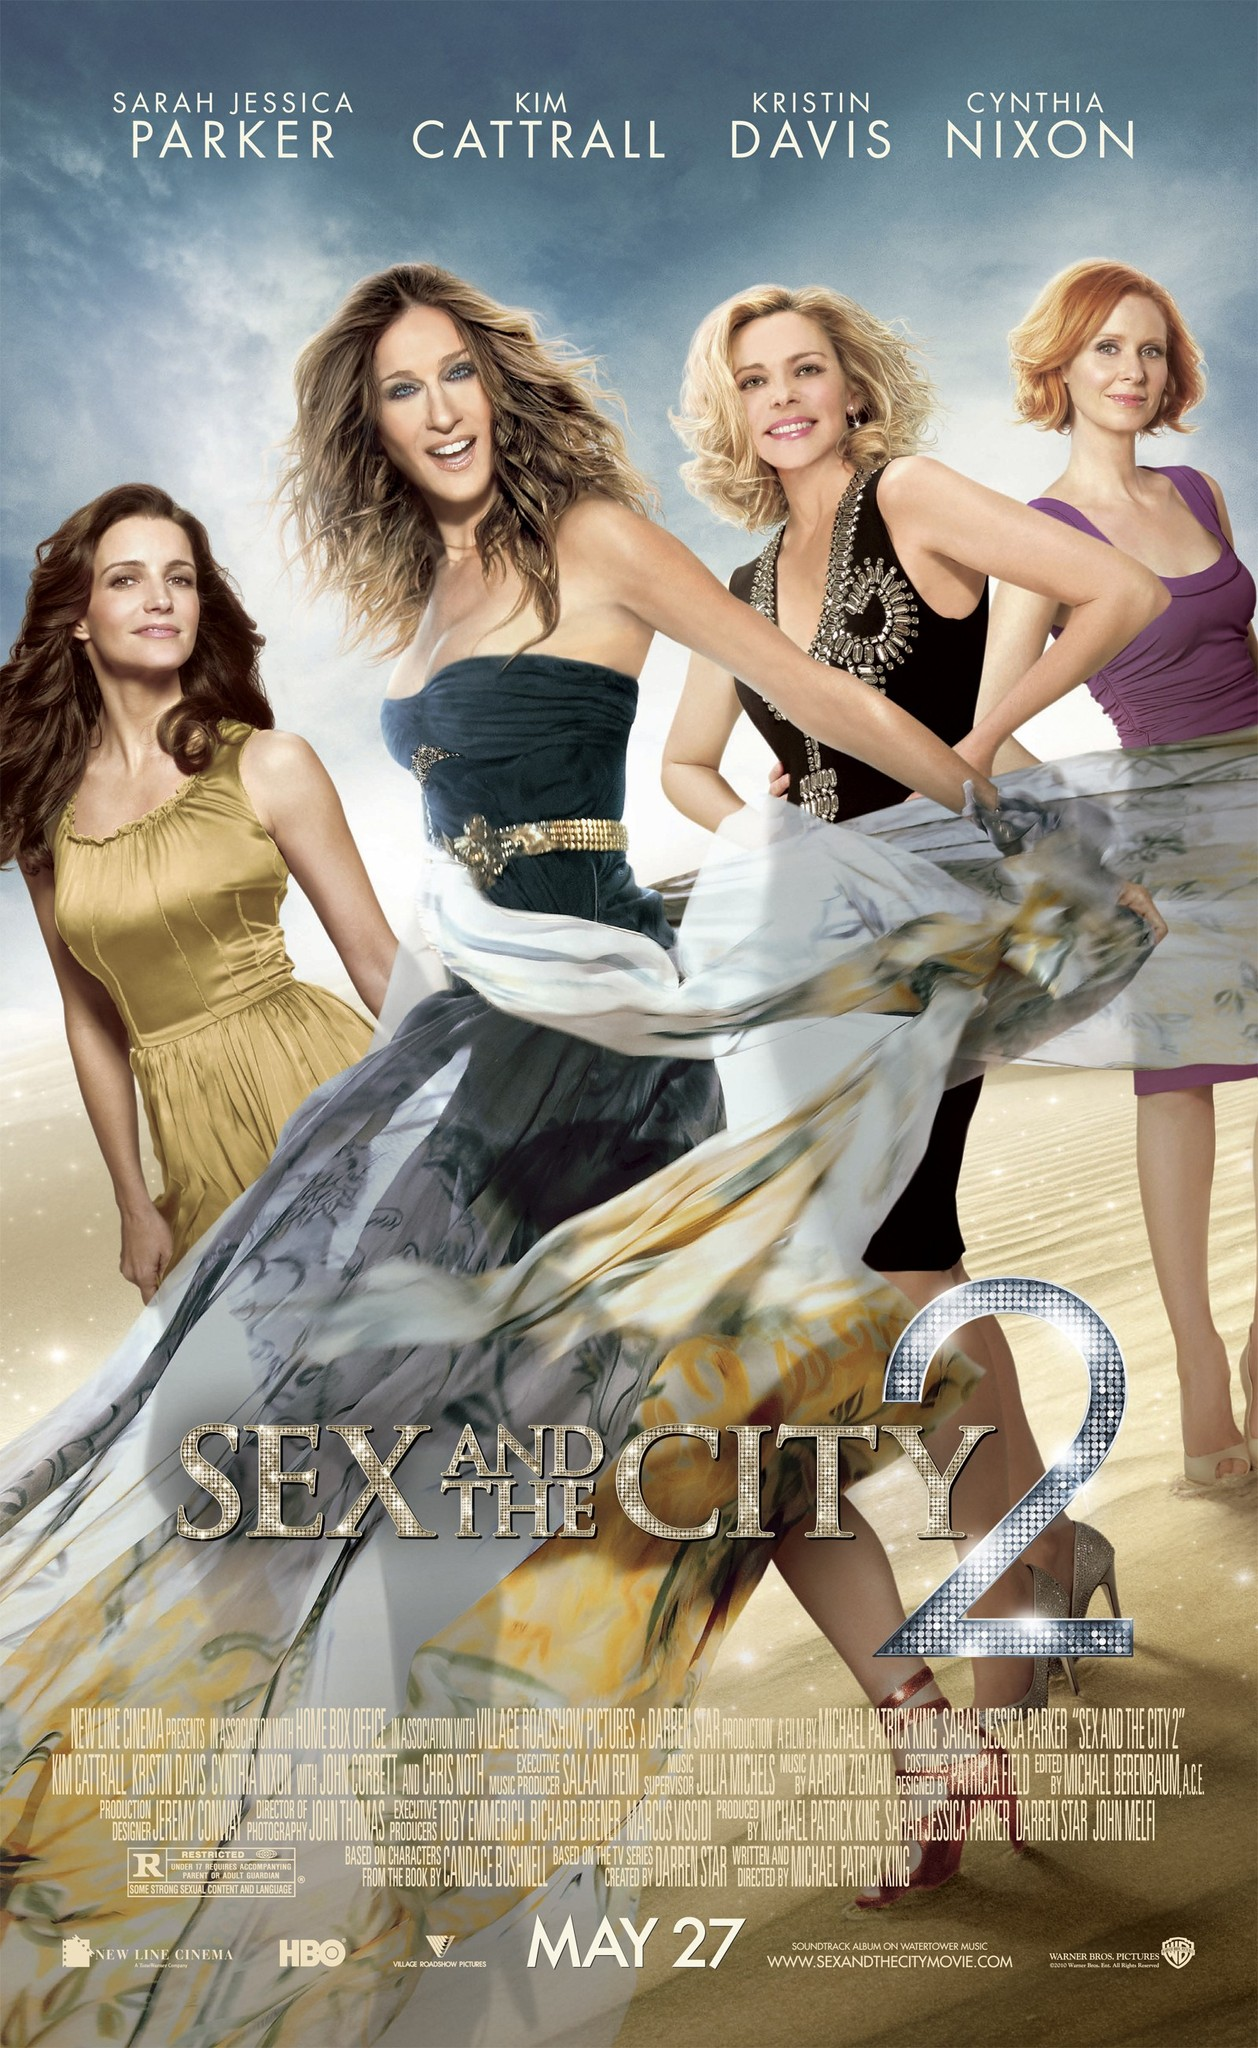 Showtimes for sex and the city